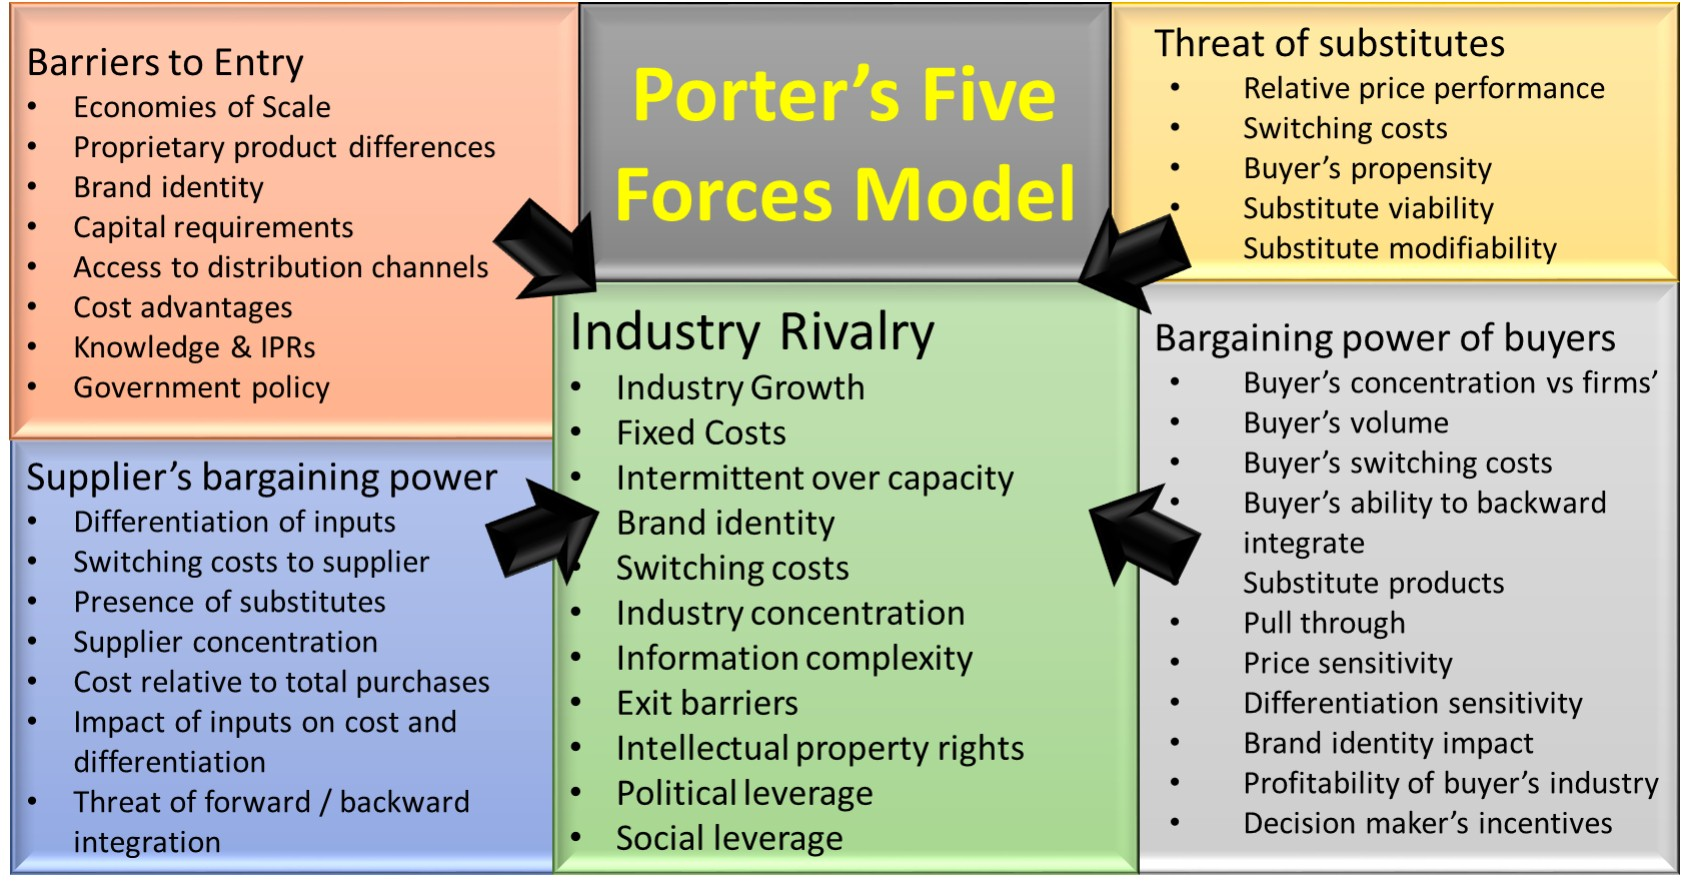 Porter's Five Forces Model (Competitive Analysis)